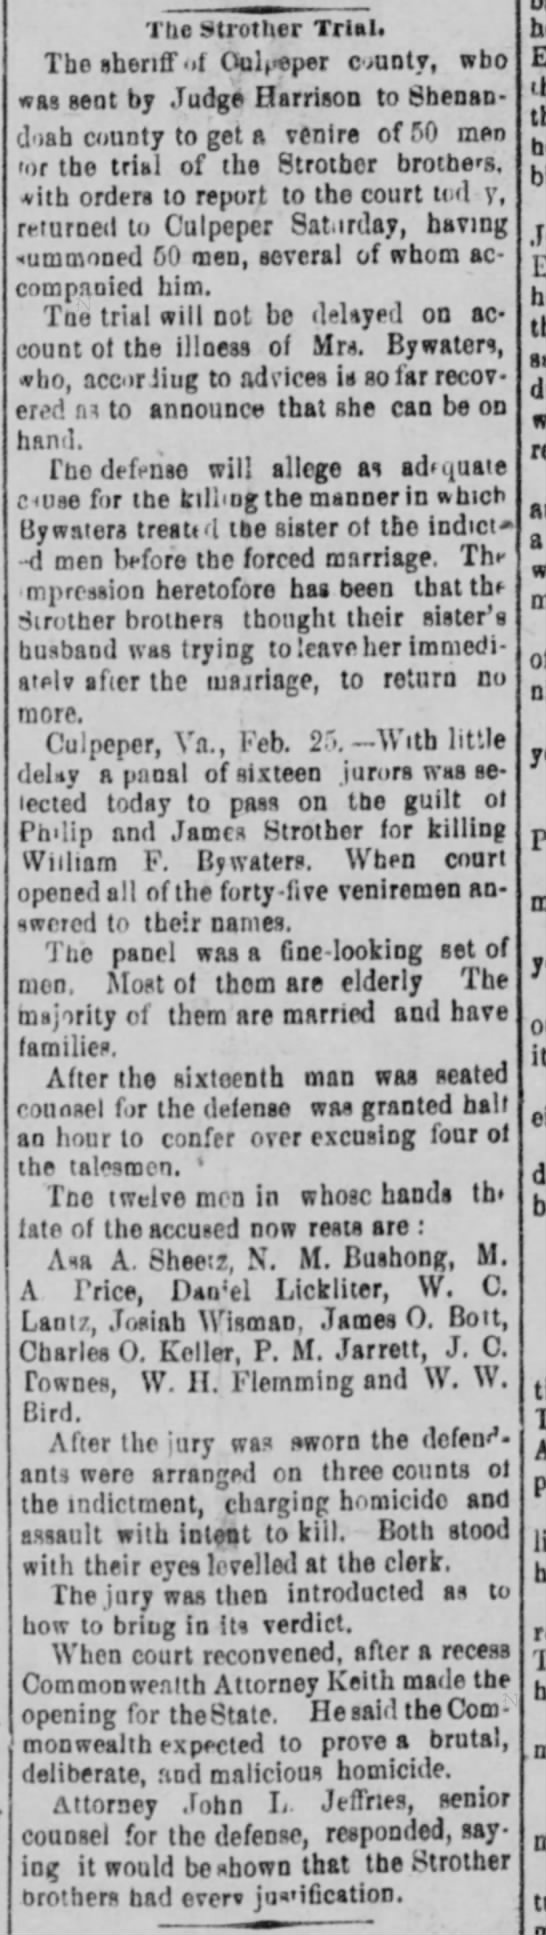 25 Feb 1907 Culpeper tragedy - 50 men from Shenandoah County; selected 16 jurors